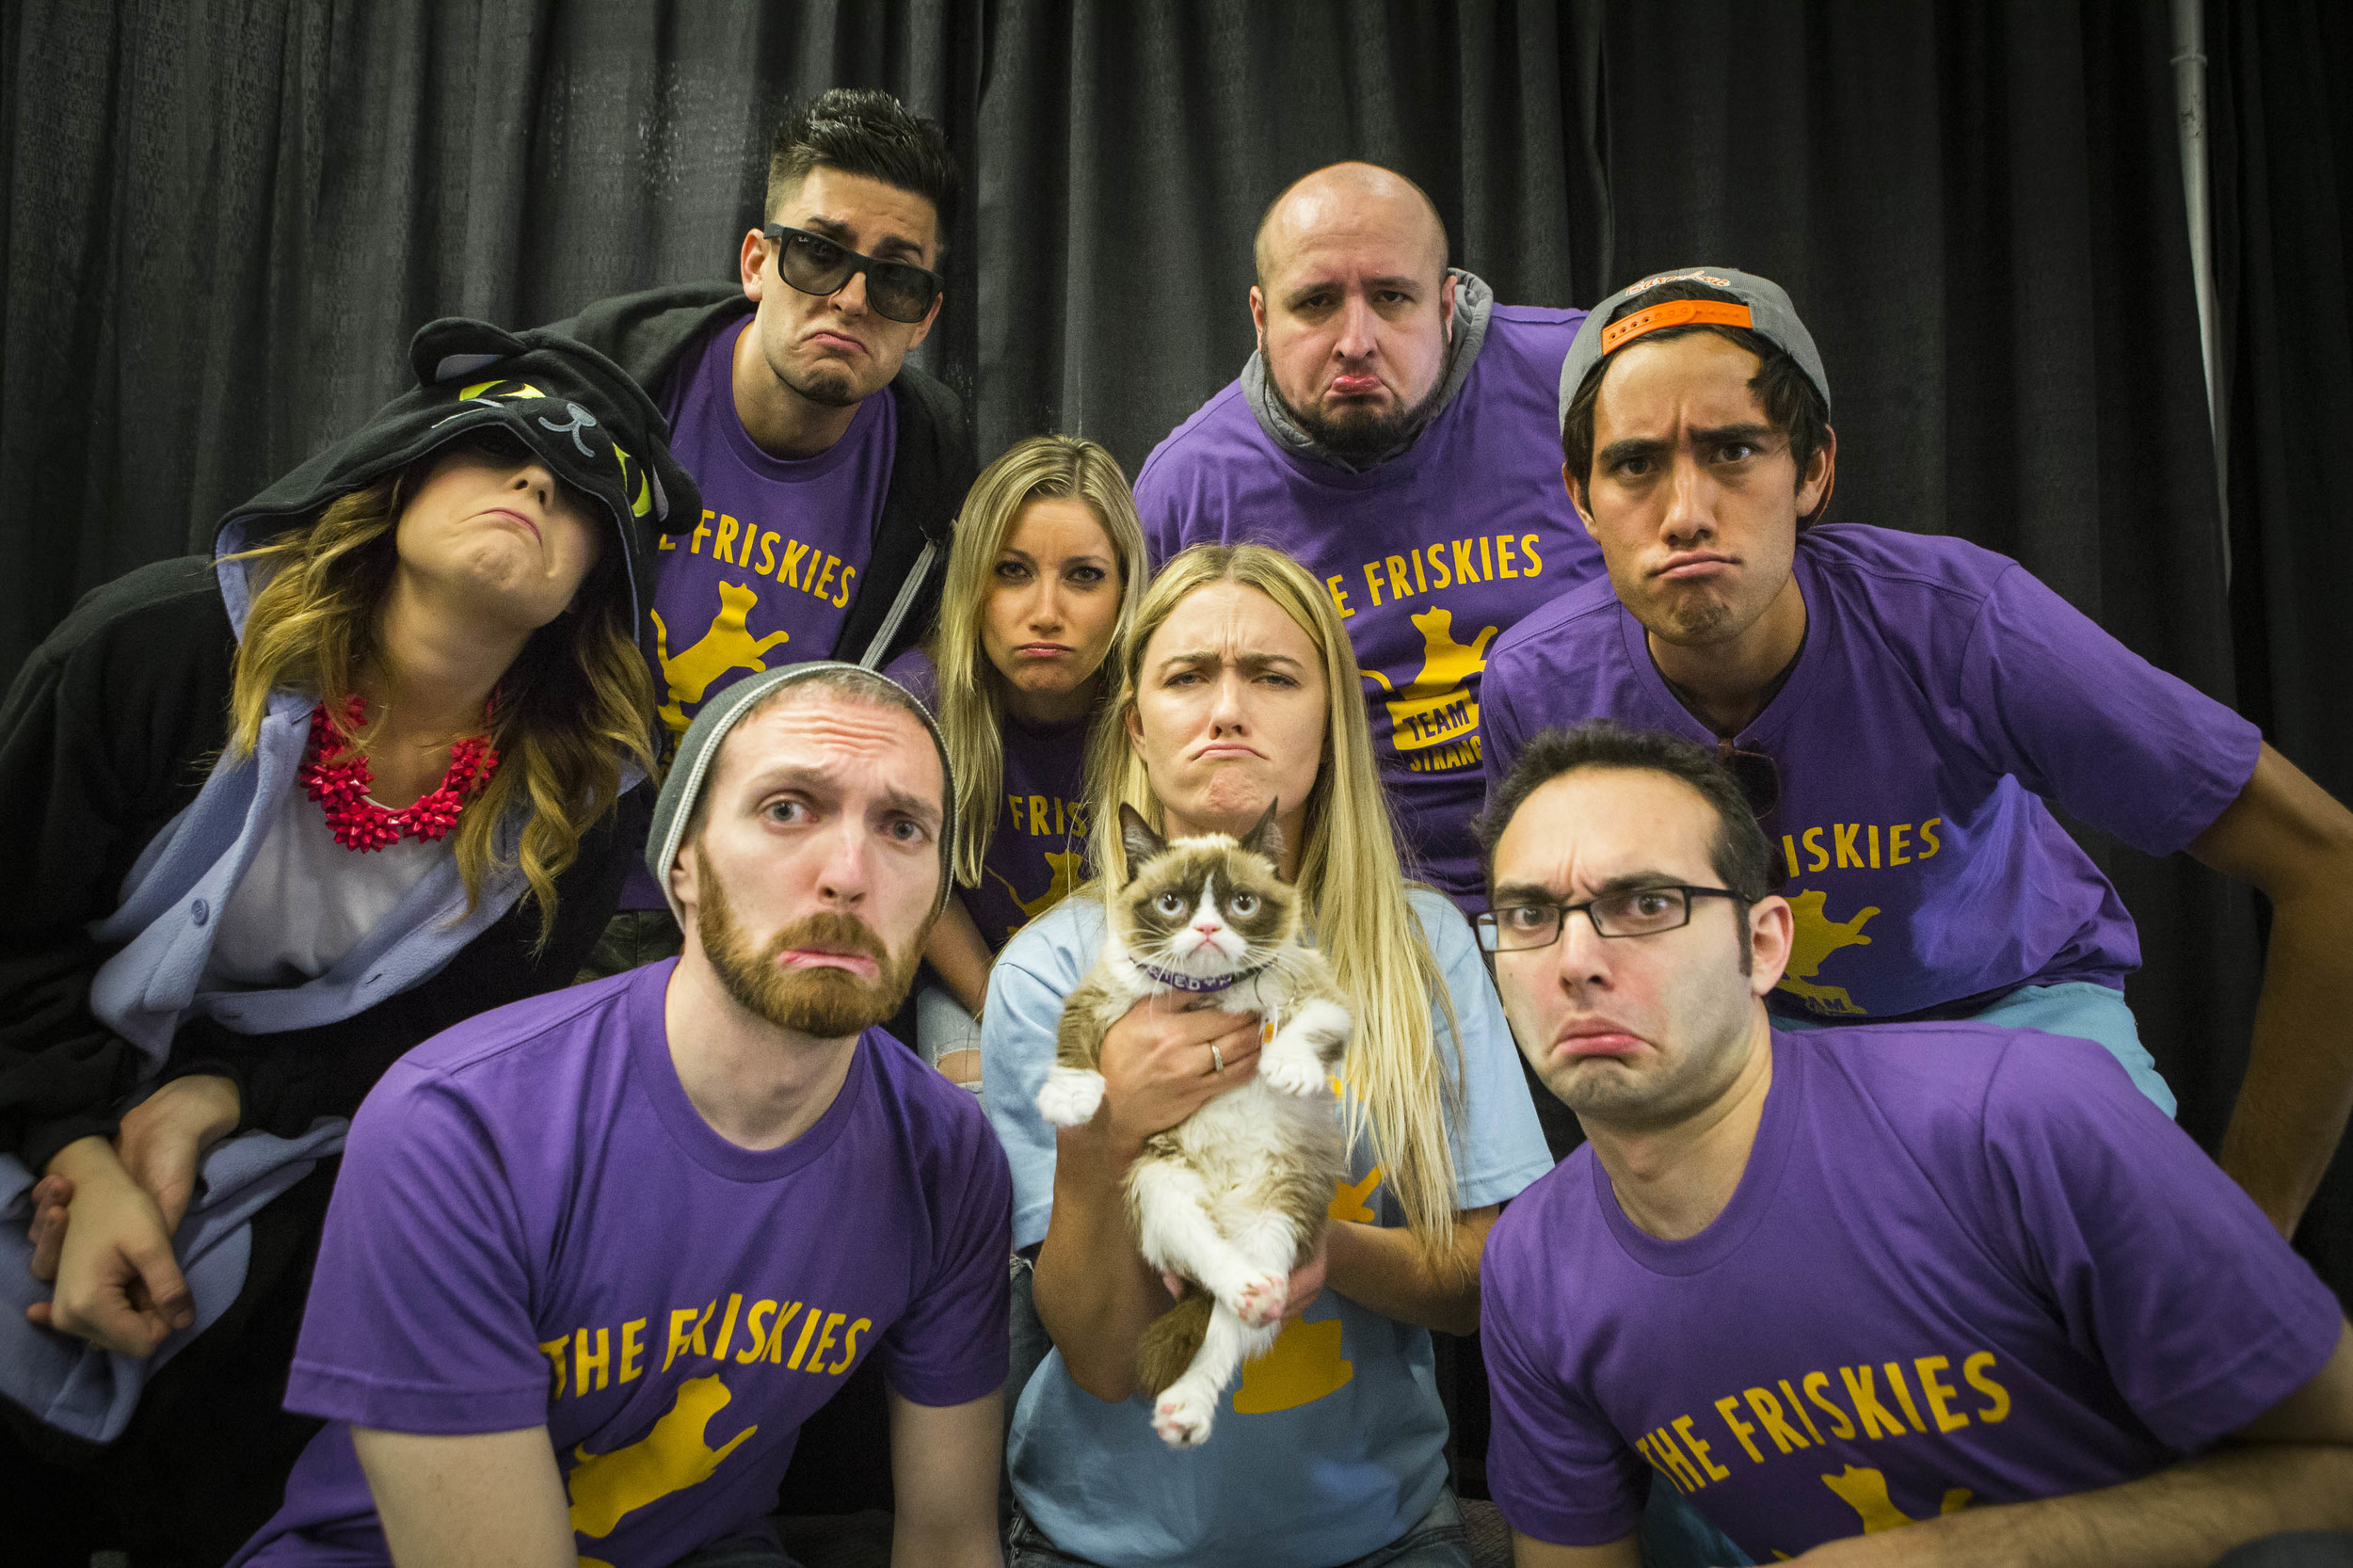 The Friskies/VidCon